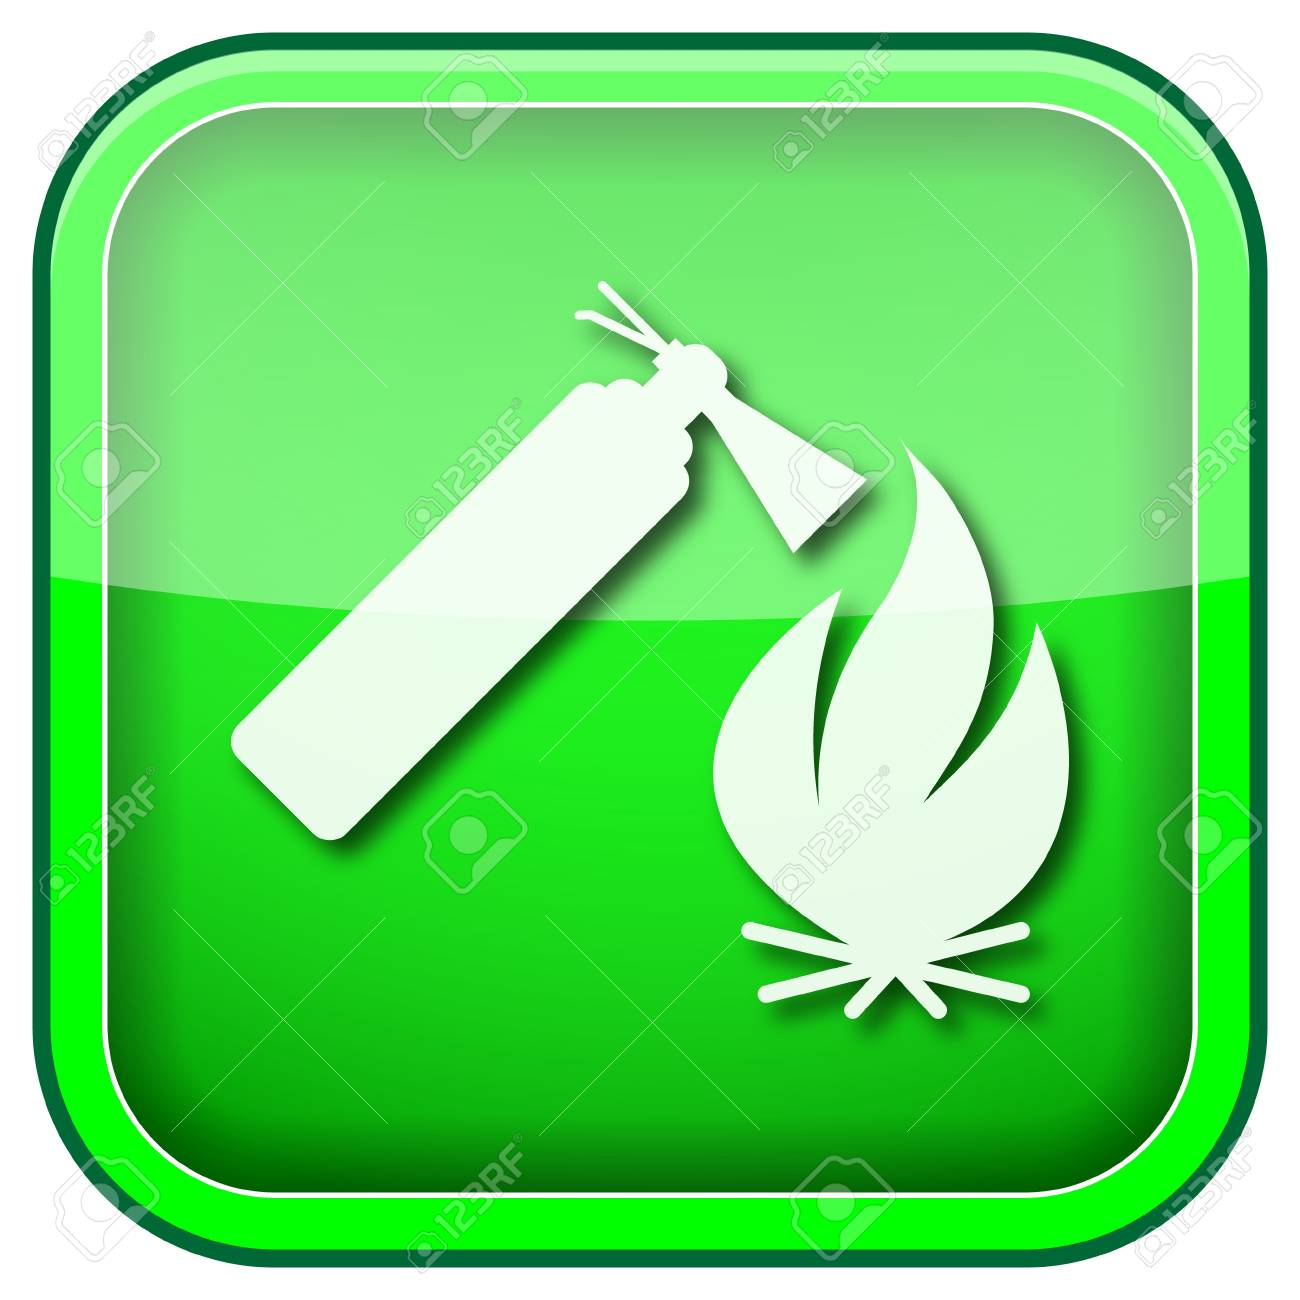 Square shiny icon with white design on green background Stock Photo - 21055900